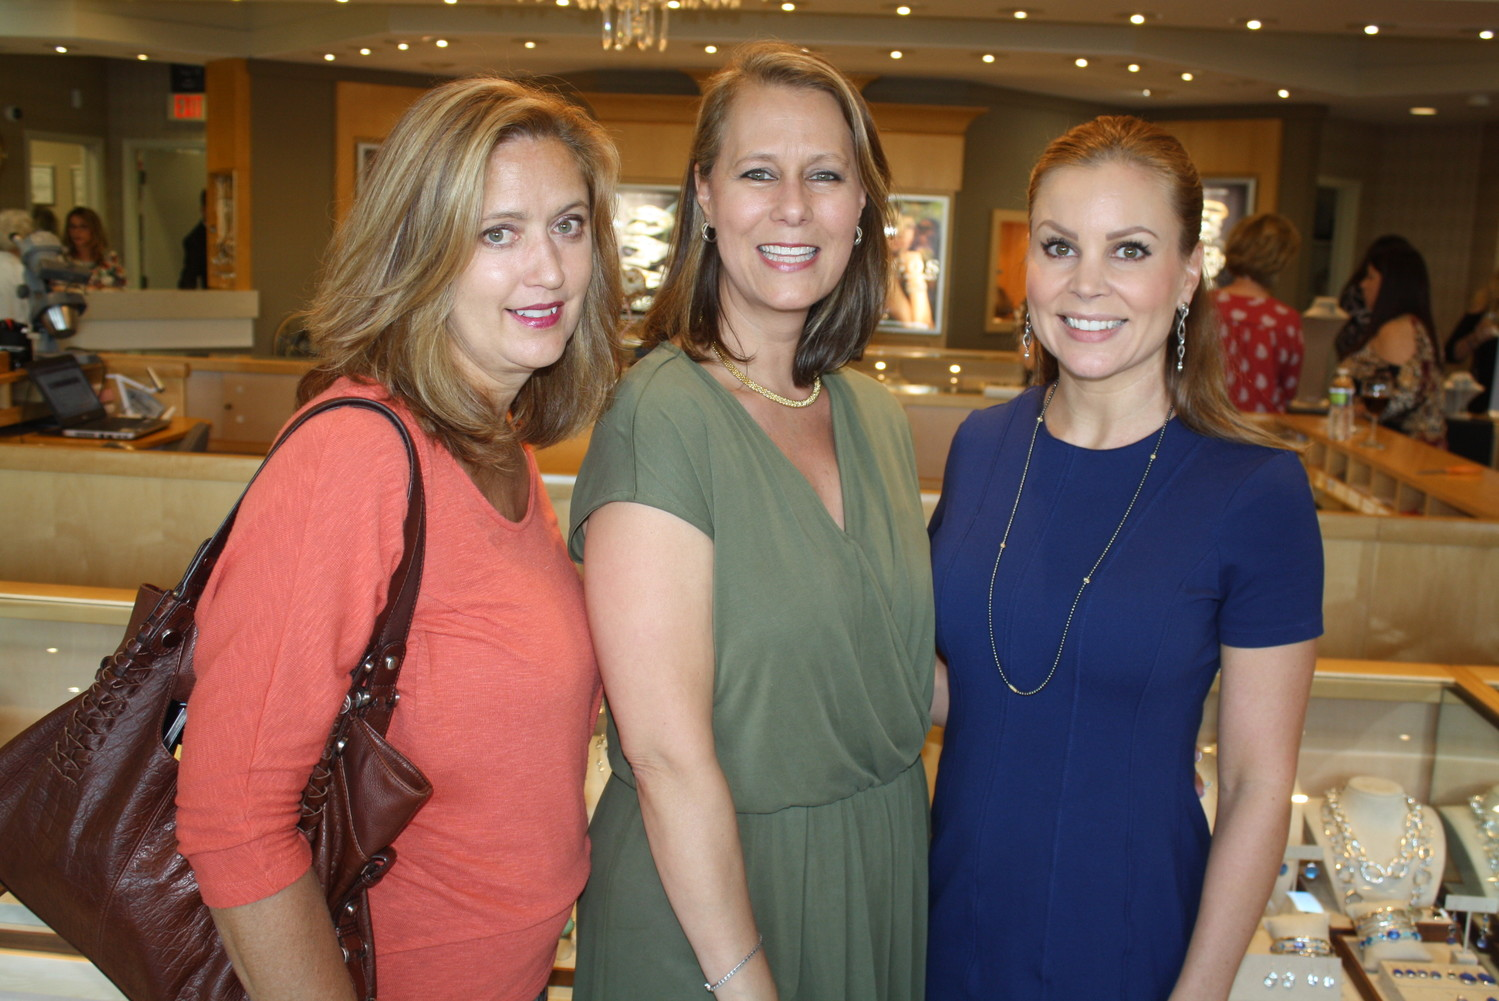 Dawn Frazier, Lisa Crouch and Melissa Abler